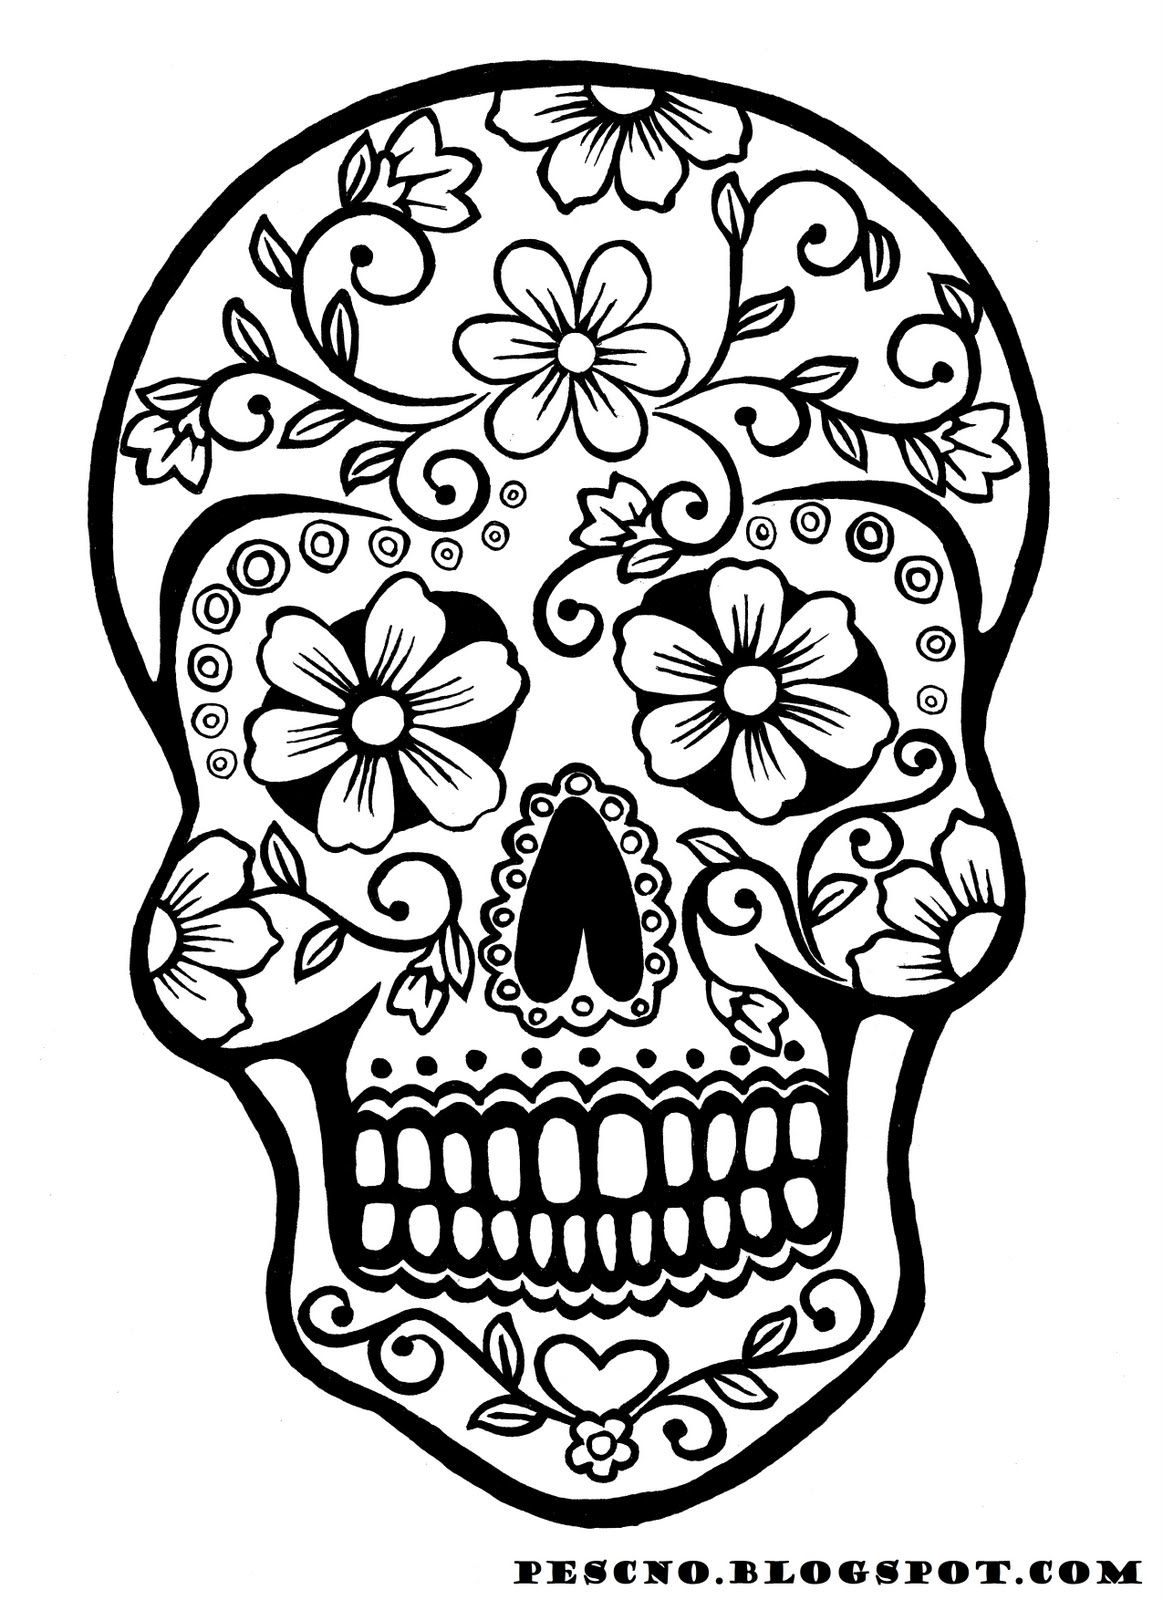 Pescno Day Of The Dead 2 Skull Coloring Pages Halloween Coloring Halloween Coloring Pages